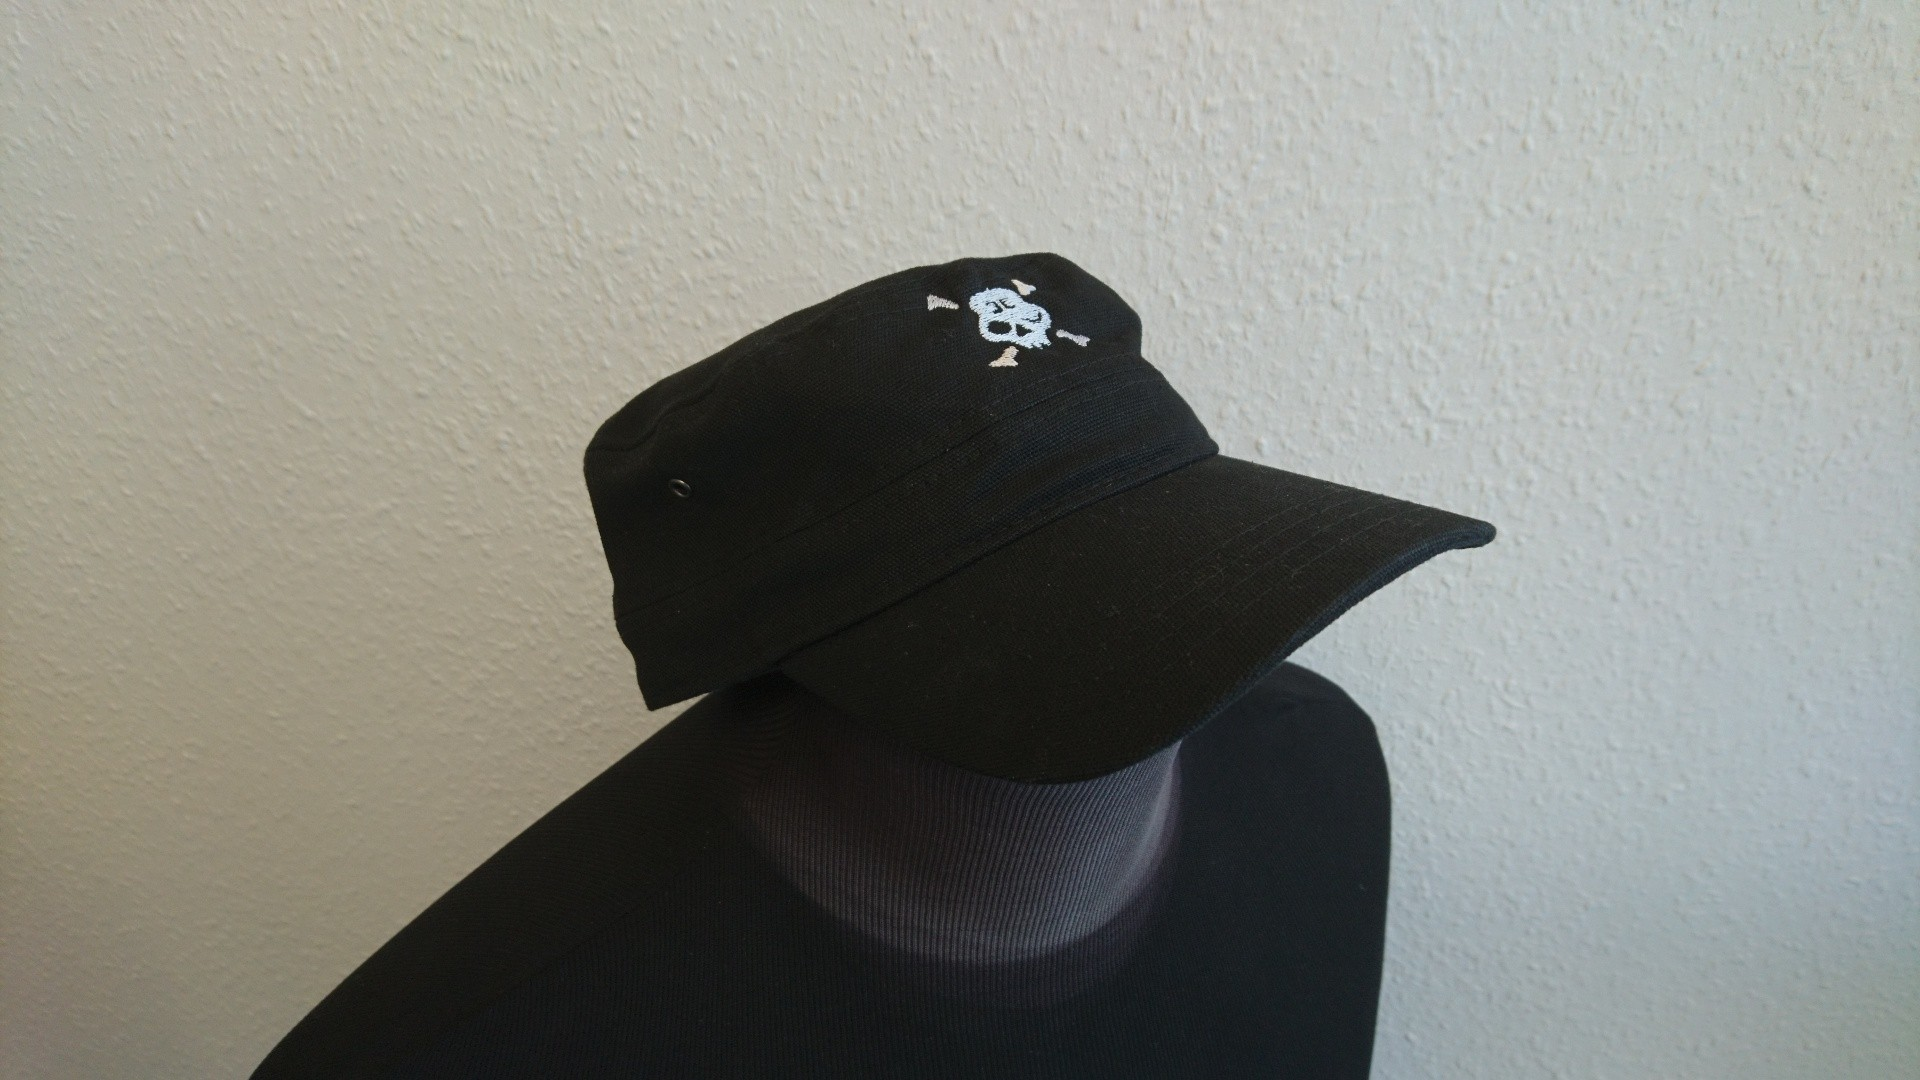 Combichrist - Industrial Cult - Army Cap